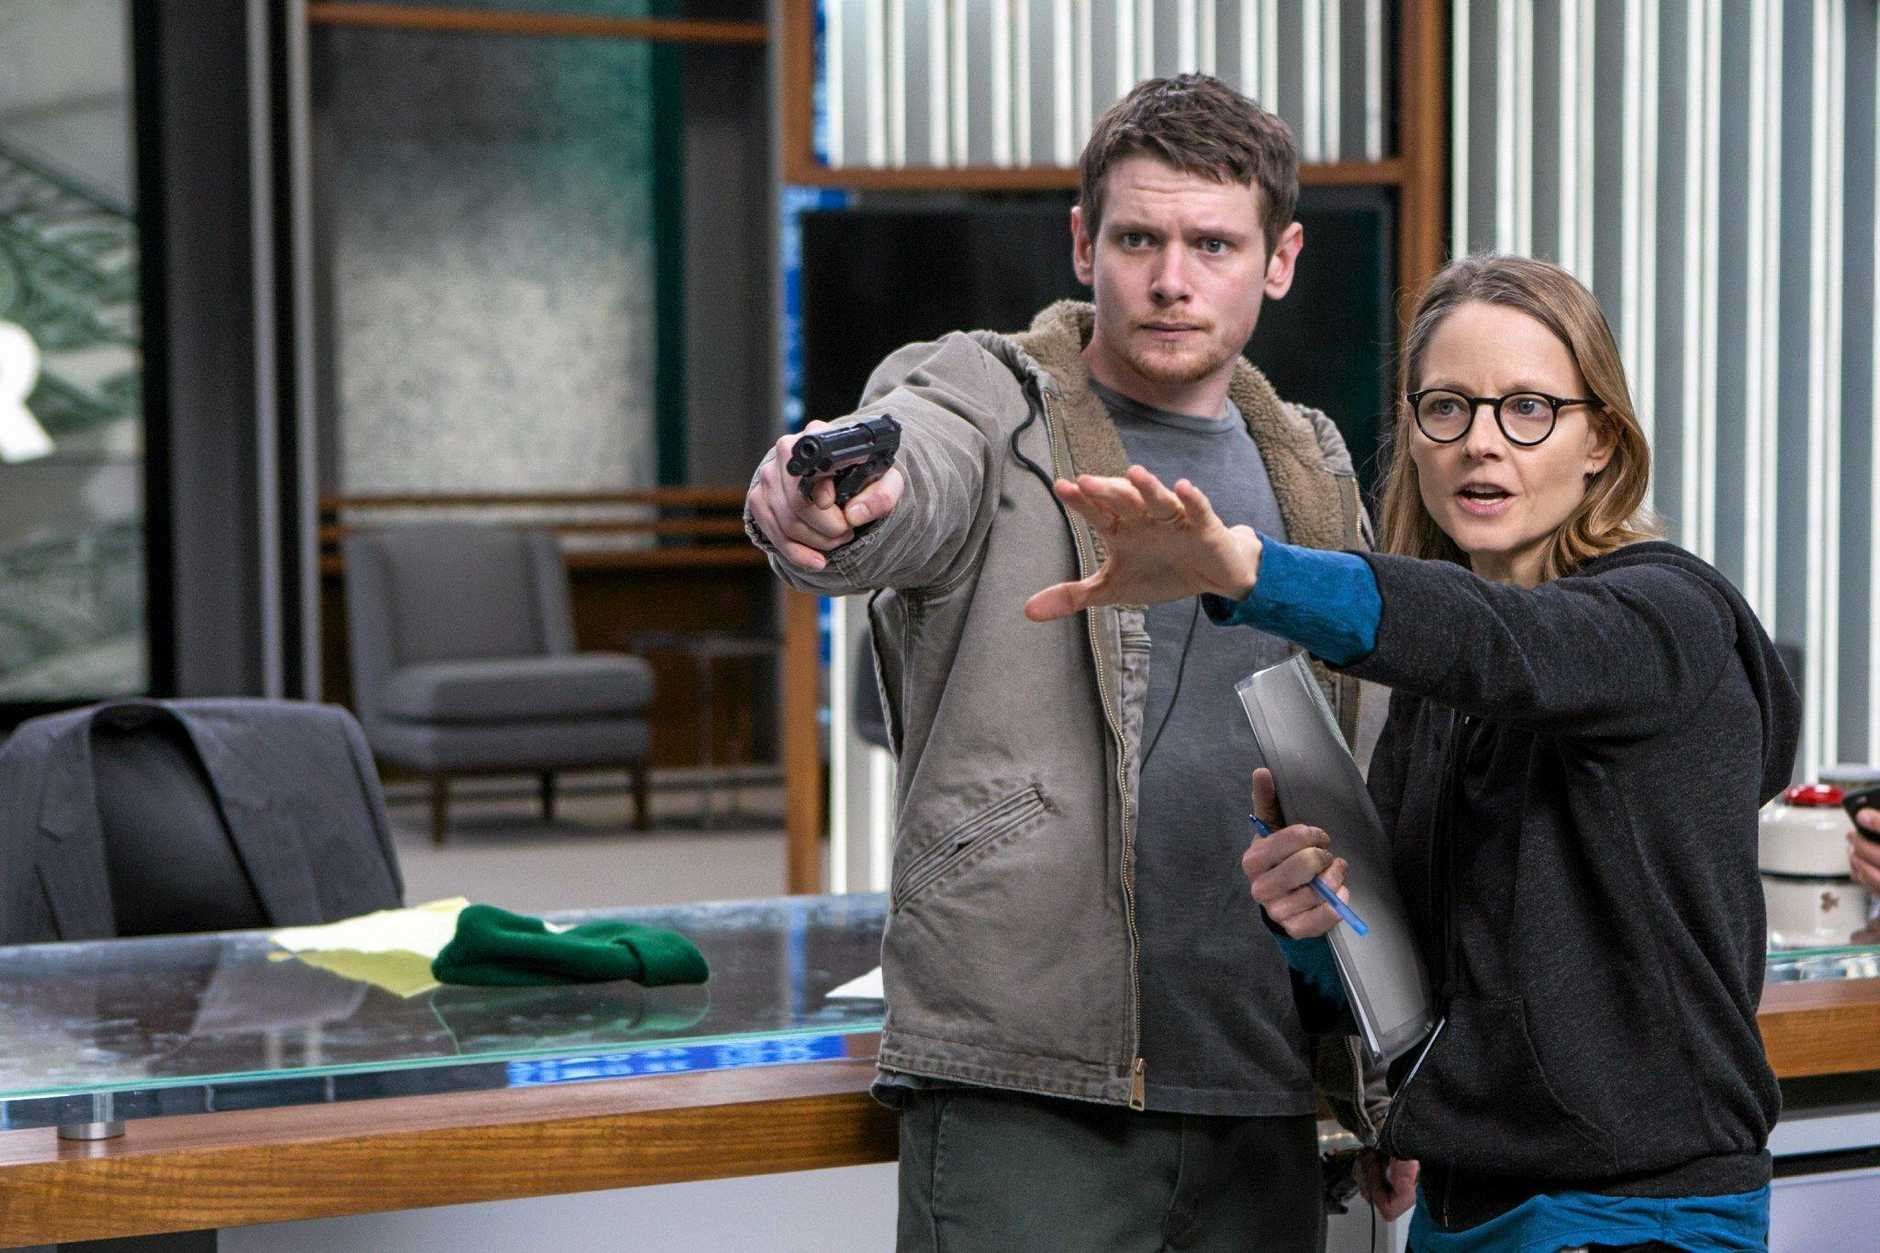 Jack O'Connell and director Jodie Foster on the set of the movie Money Monster.